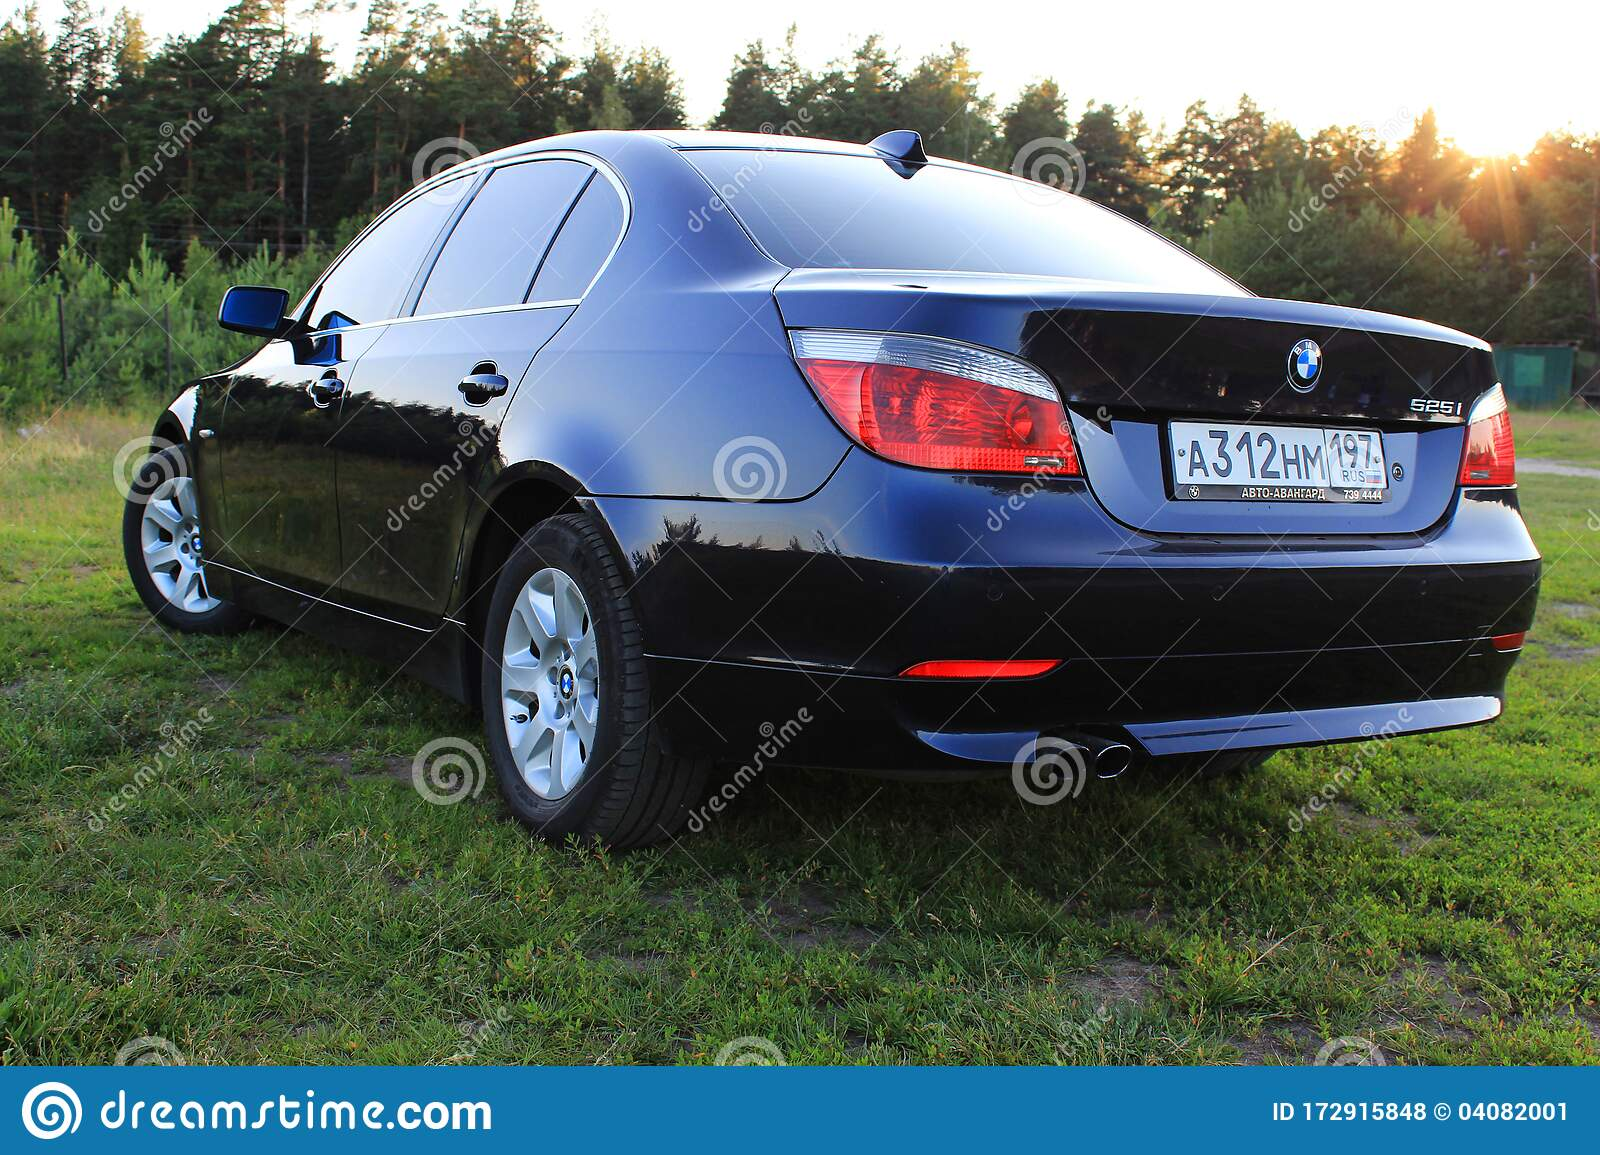 Dark Blue Bmw 5 Series E60 On A Sunny Summer Day In A Clearing With Green Grass Editorial Stock Photo Image Of Bavarian Automotive 172915848